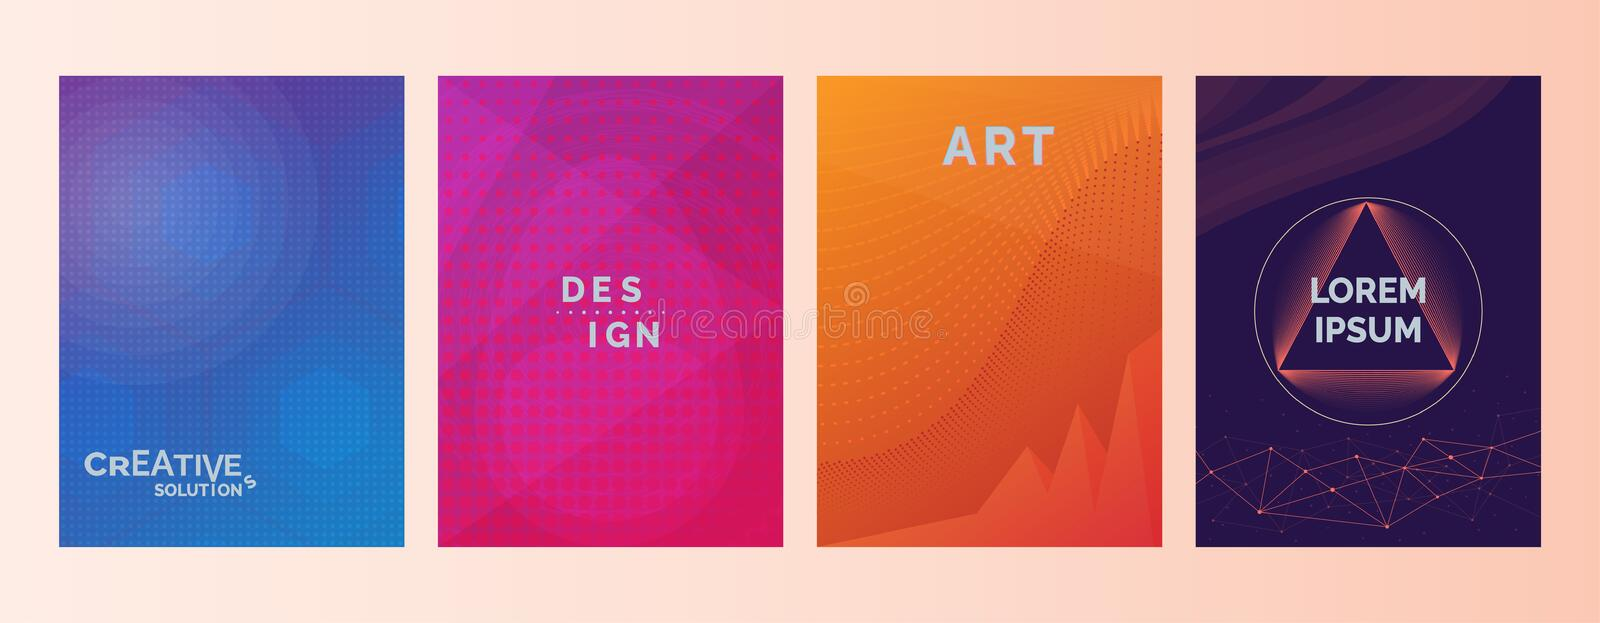 Creative solutions Design Art Lorem Ipsum text in abstract color gradient shapes background. Set of covers, brochures, flyer. Cool. Backgrounds, gradient royalty free illustration